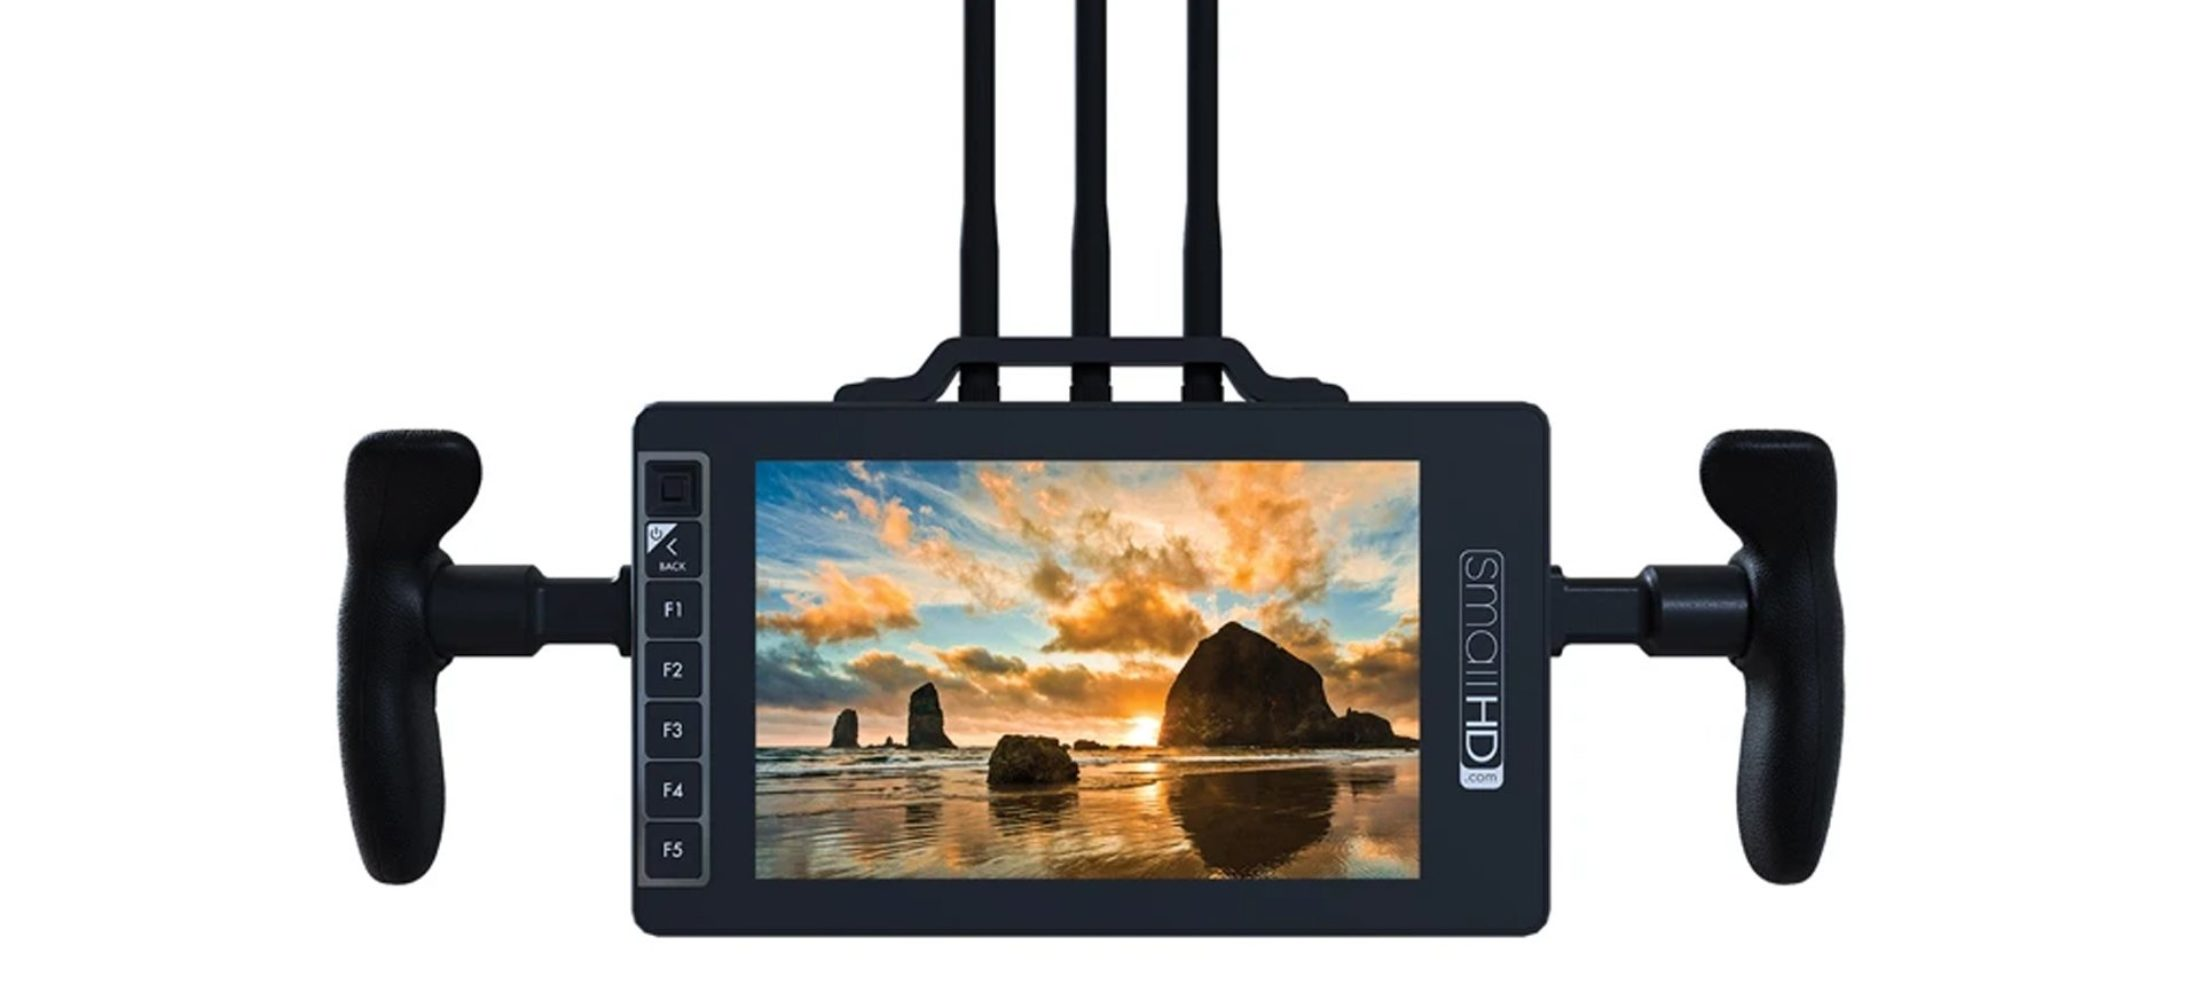 703 Bolt Wireless Monitor by SmallHD